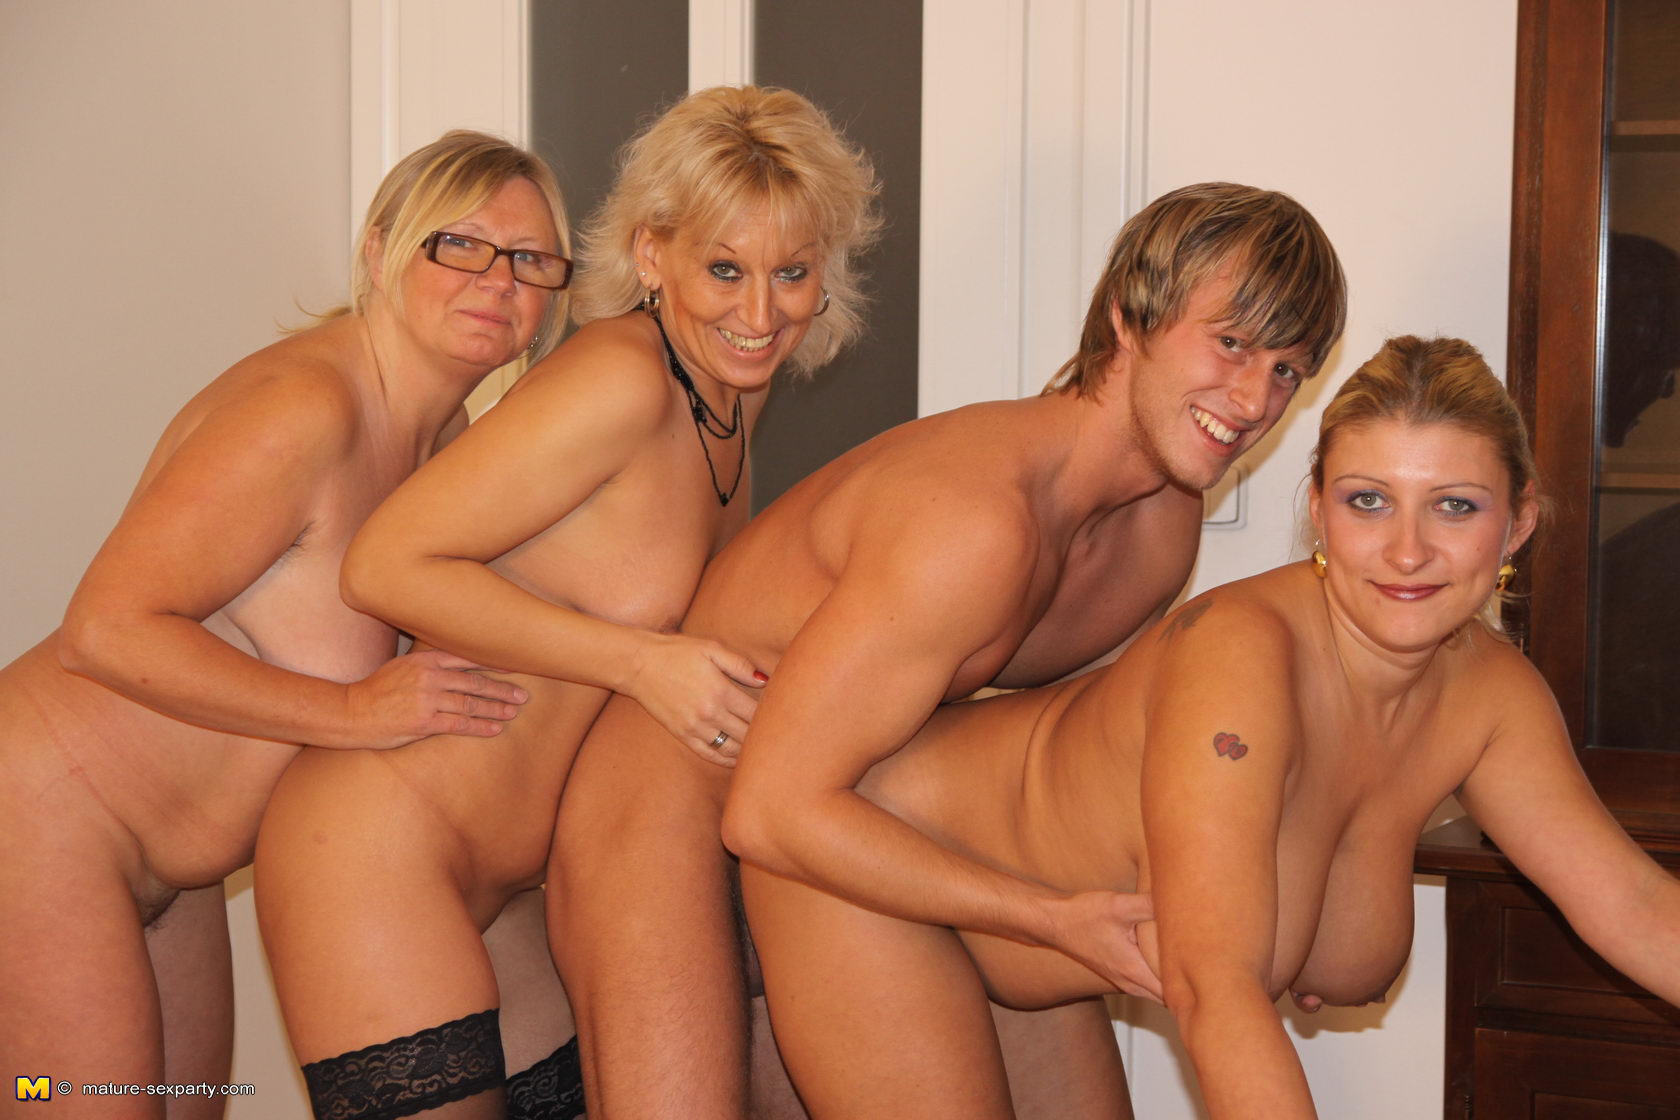 horny dudes at the party - Handsome blond guy is sandwiched between thee sex crazed matures who want  his dick badly